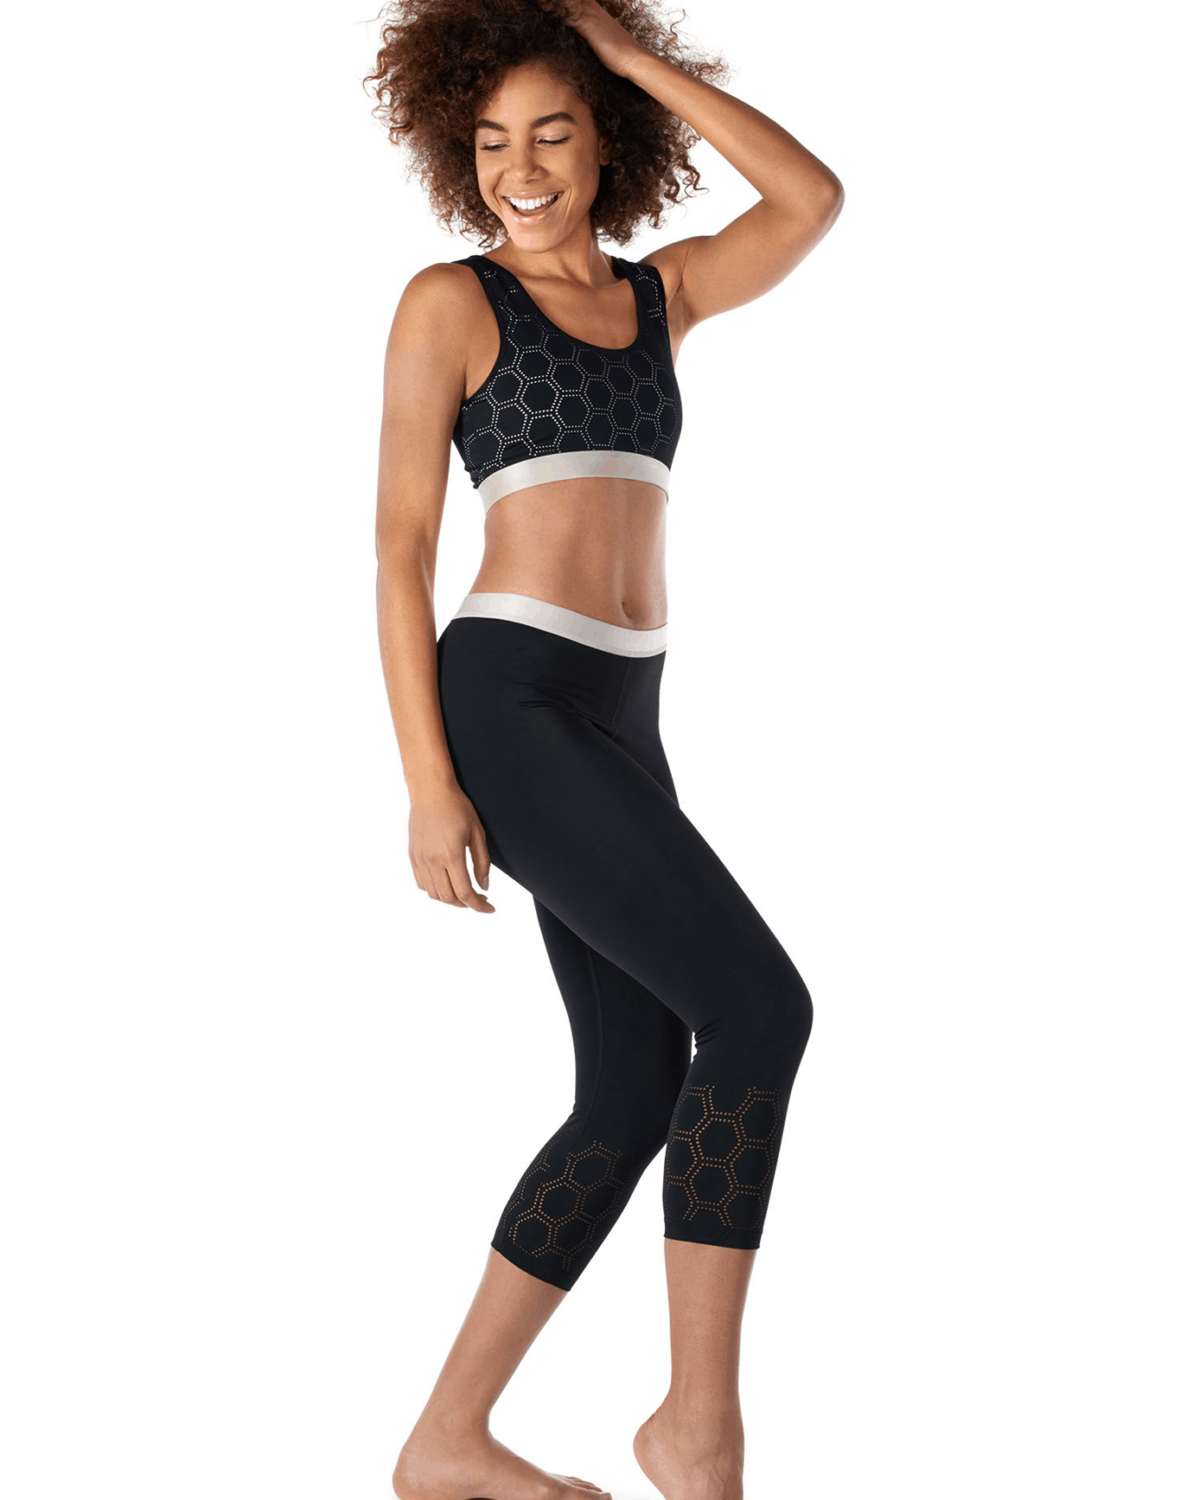 Skiny SK86 Crop Top 083093-7665 and 3:4 Running Tights 083112-7665 Black